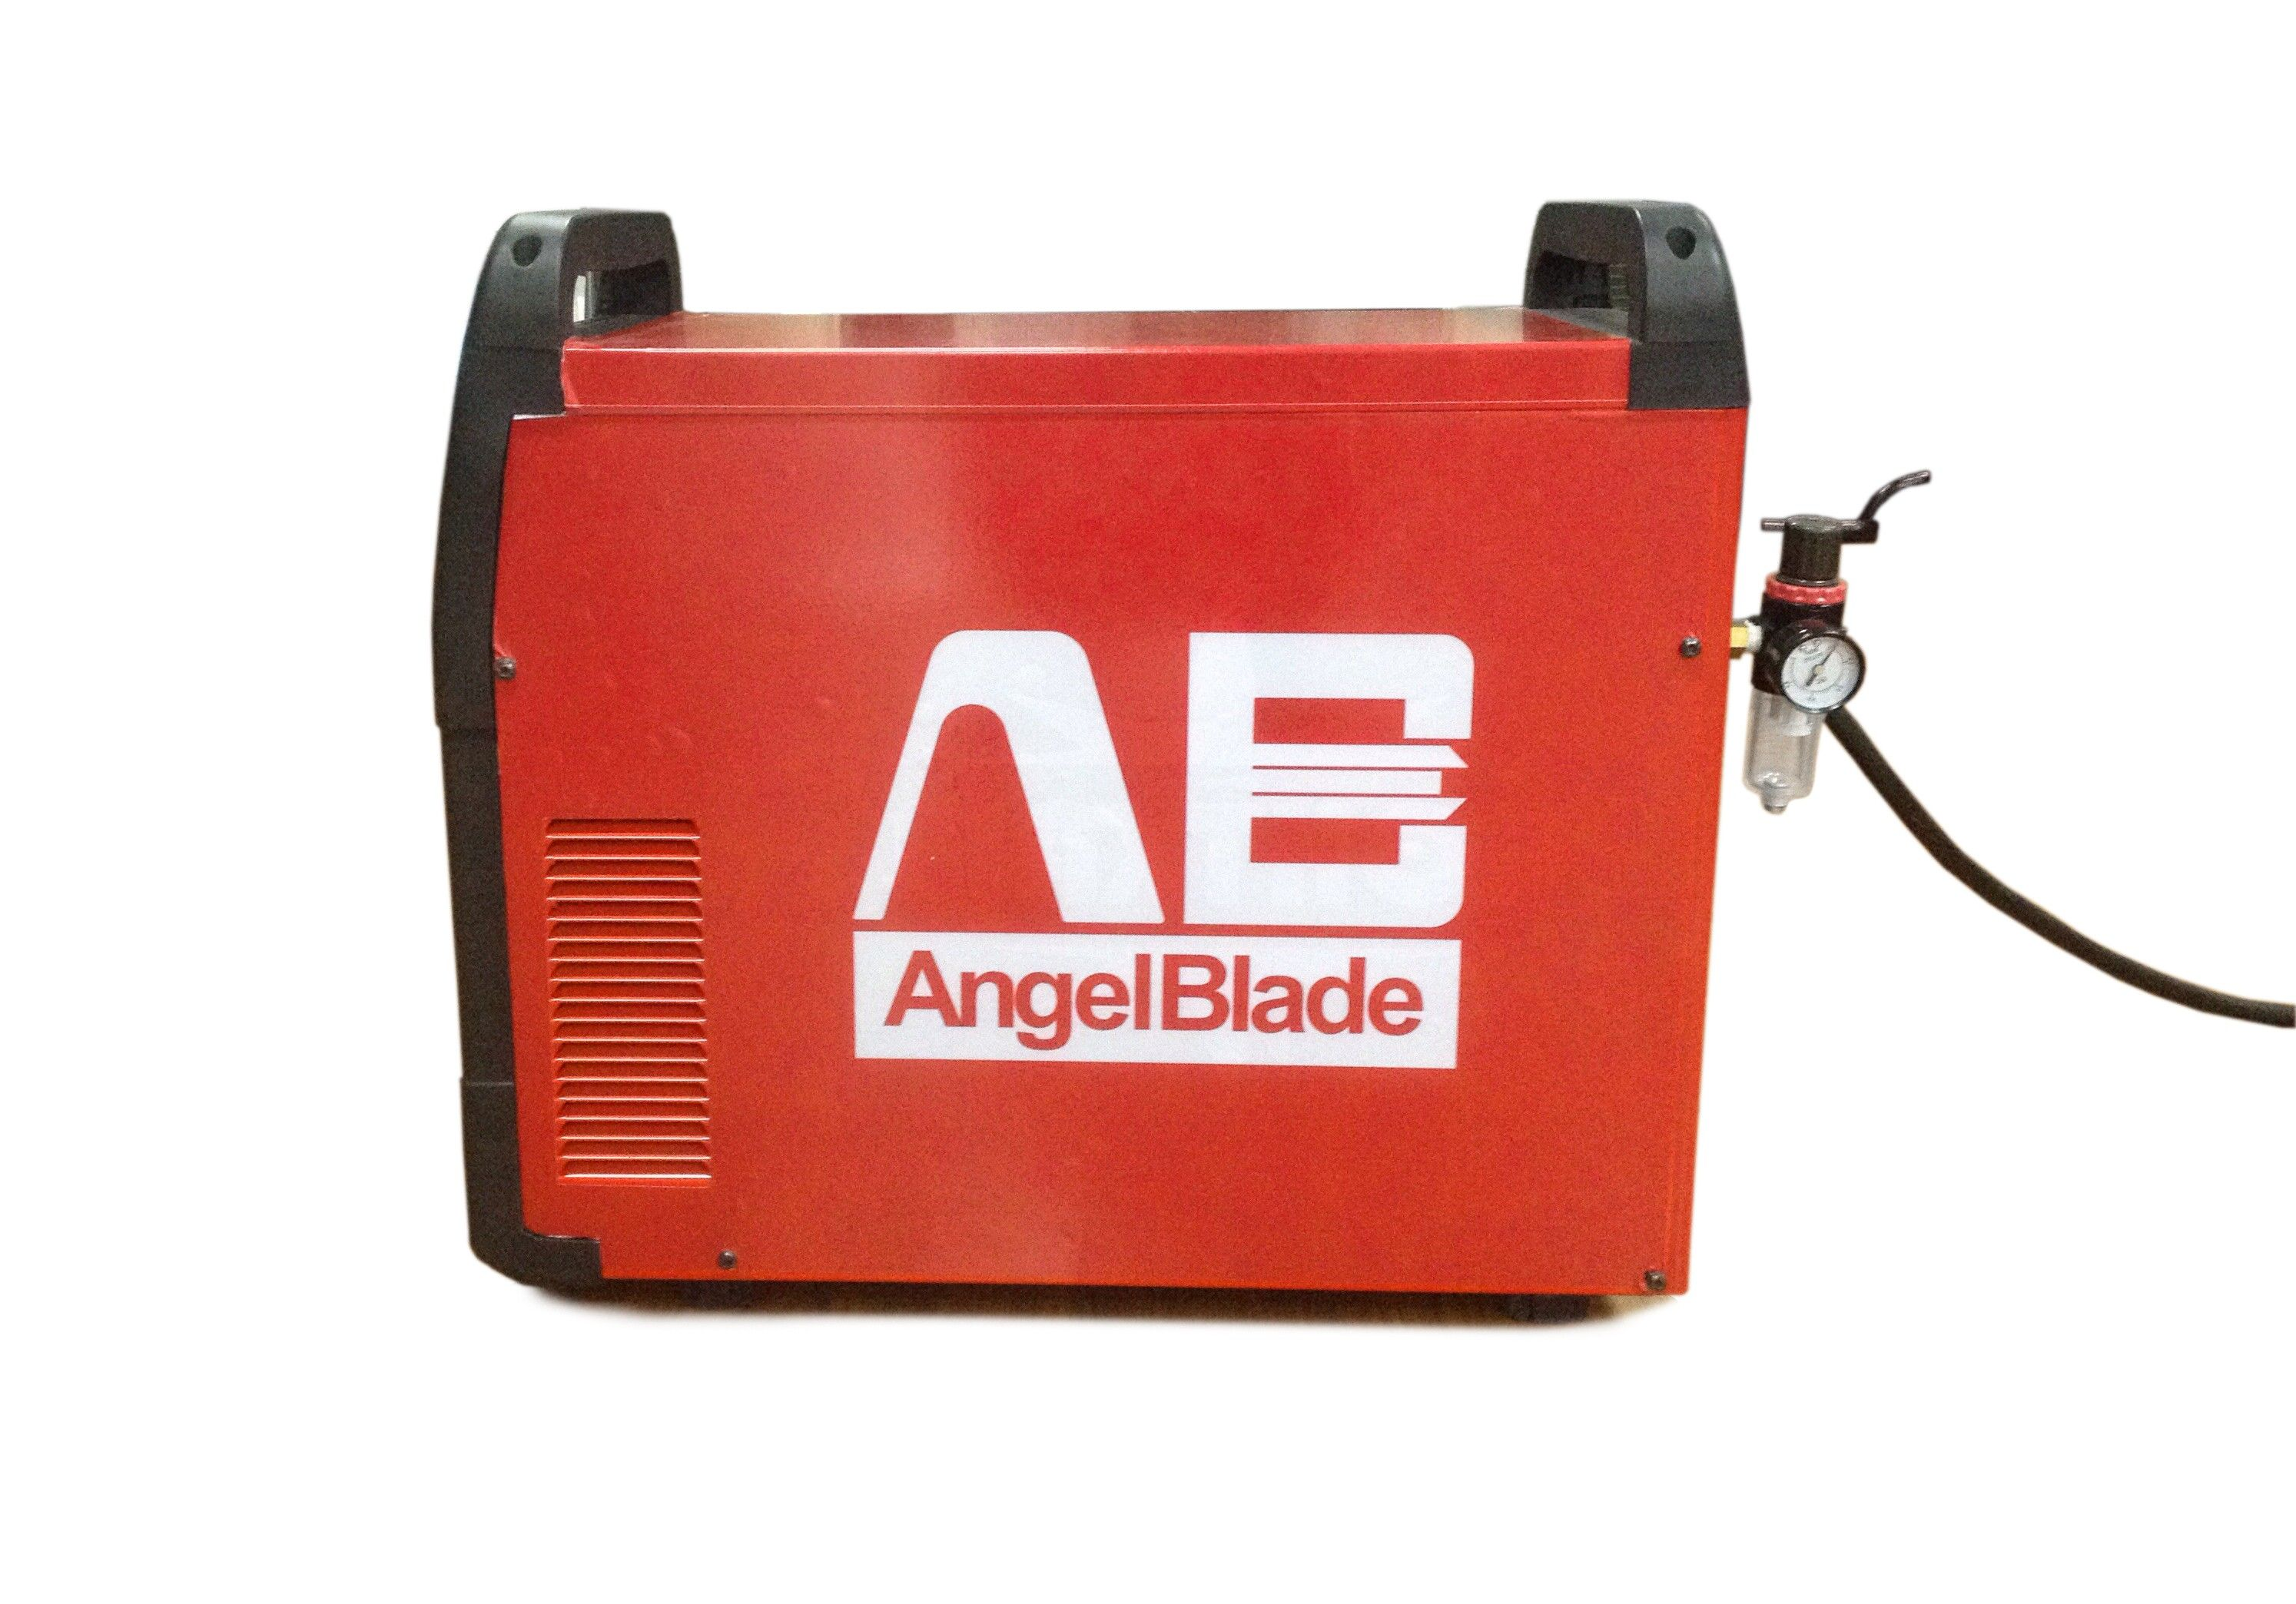 Front view of AngelBlade air plasma cutter. Send emails to sales@abplasma.com for more info.